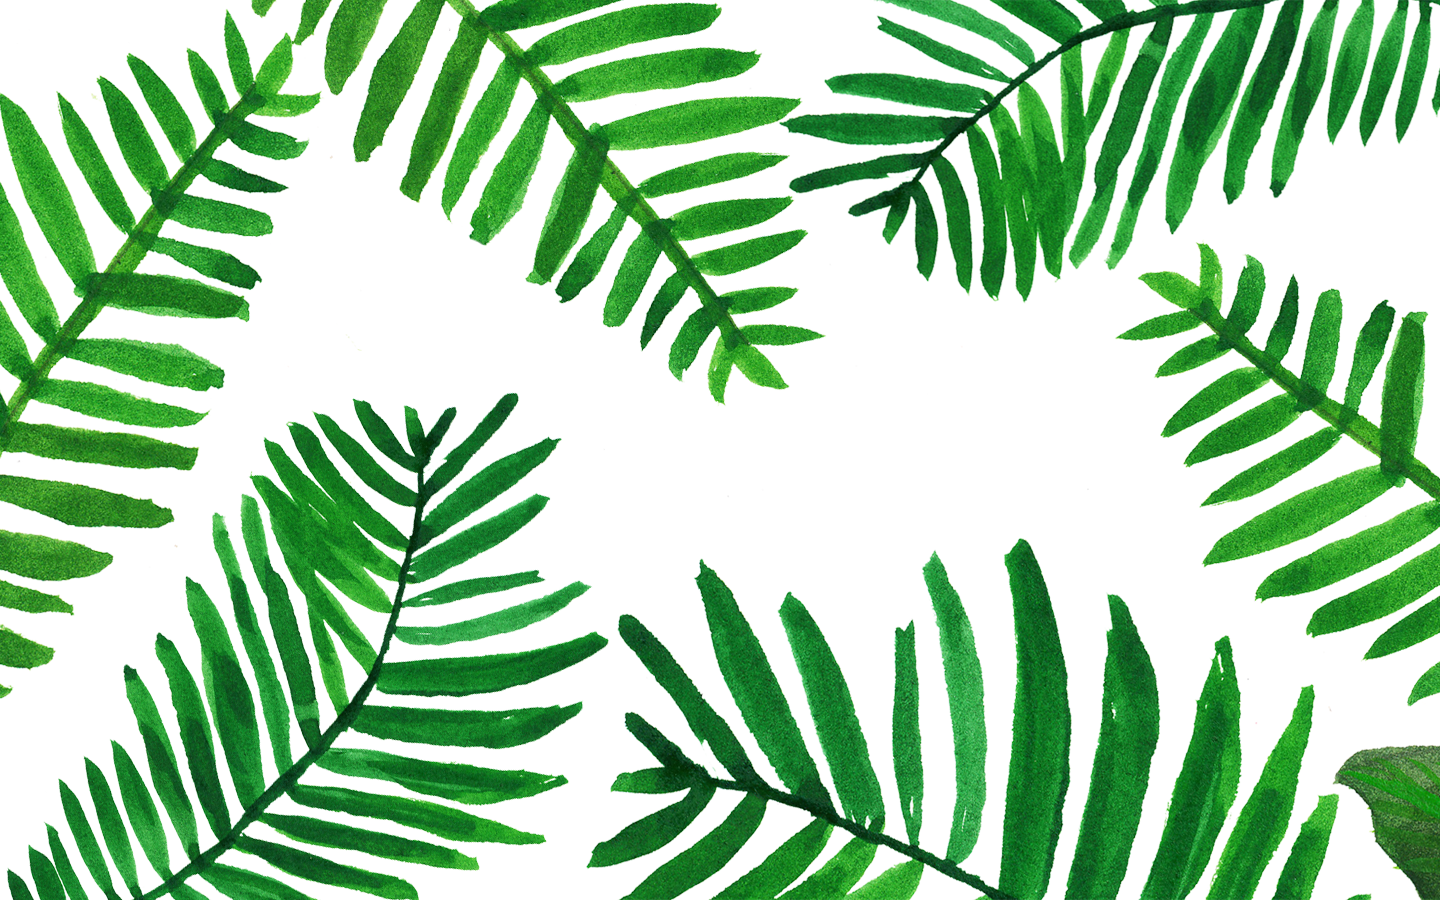 Palm Leaves Wallpaper From Www.piximitmilch.at